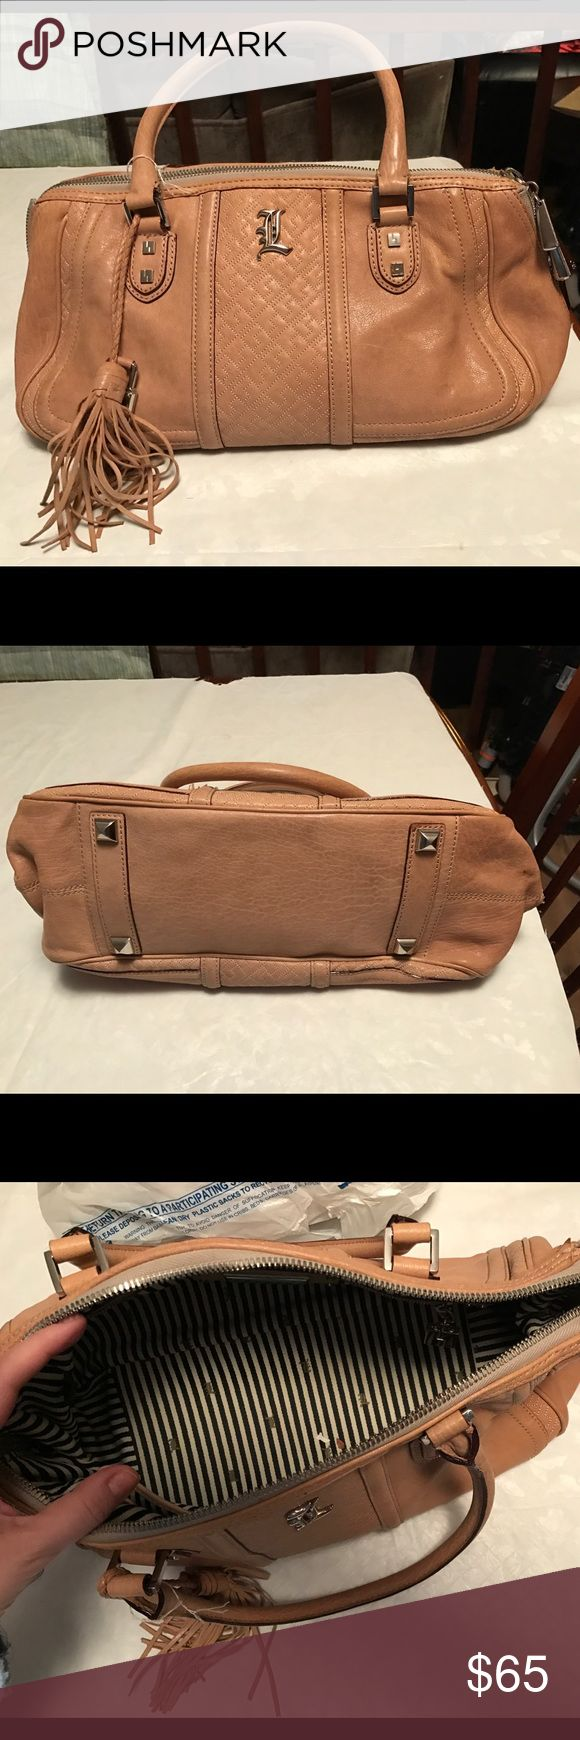 LAMB bag Great cream color. Nice leather. Silver hardware. Some normal signs of wear. In great shape. Open to offers lamb Bags Satchels